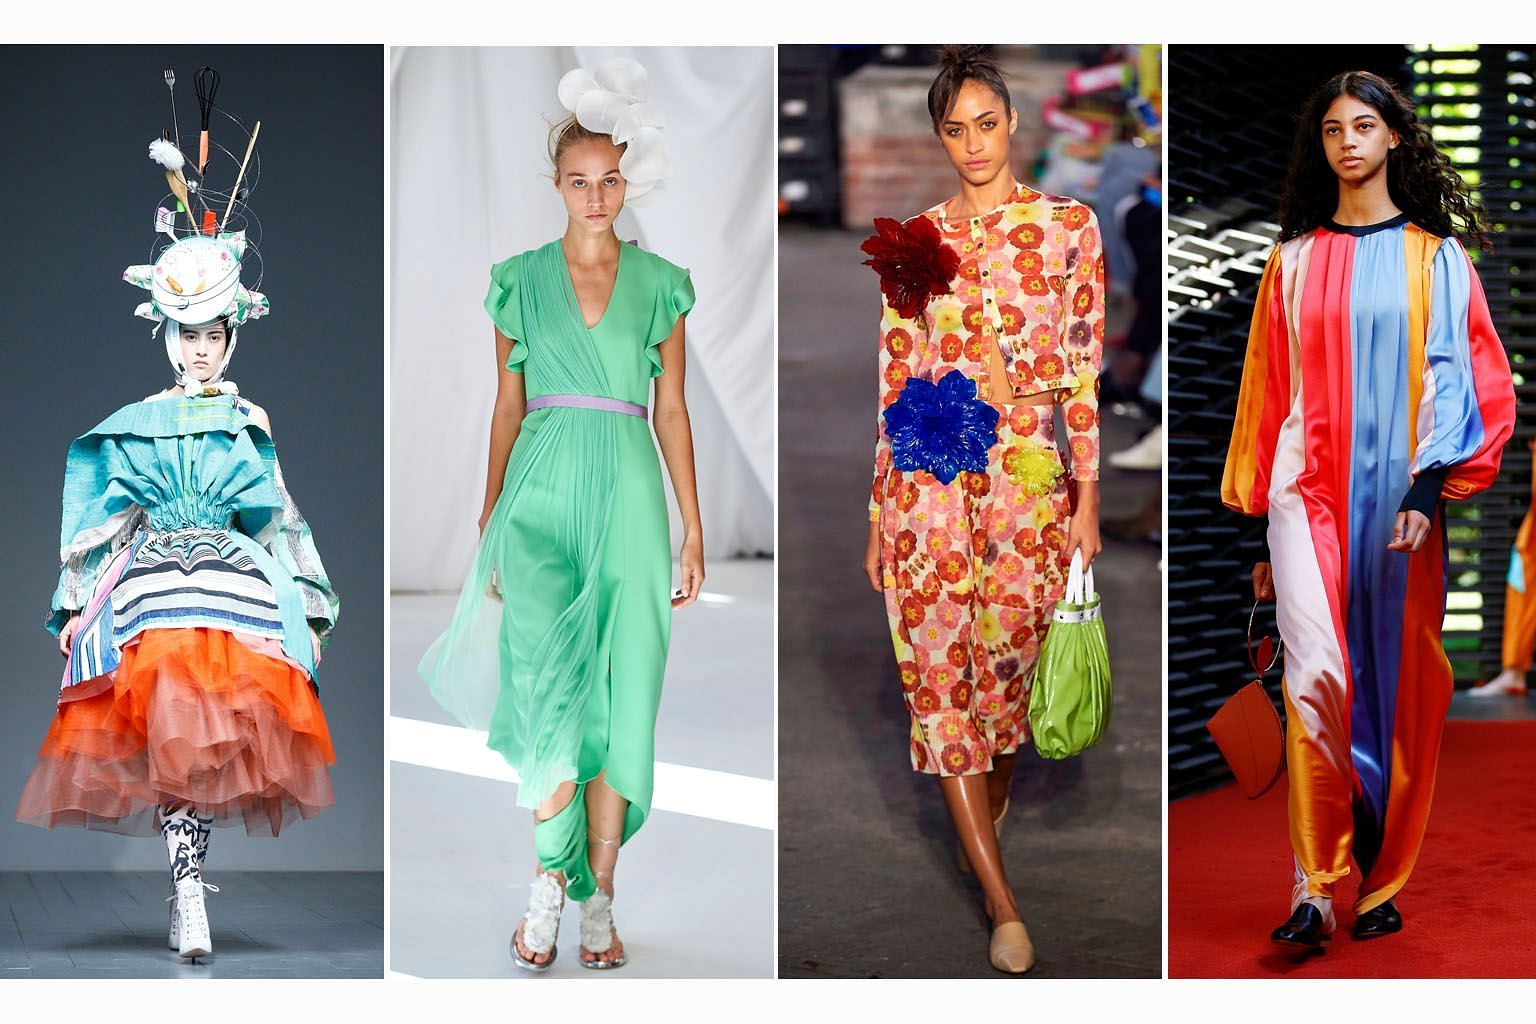 On display at London Fashion Week were creations by (clockwise from above) Matty Bovan, Delpozo, Molly Goddard and Roksanda.